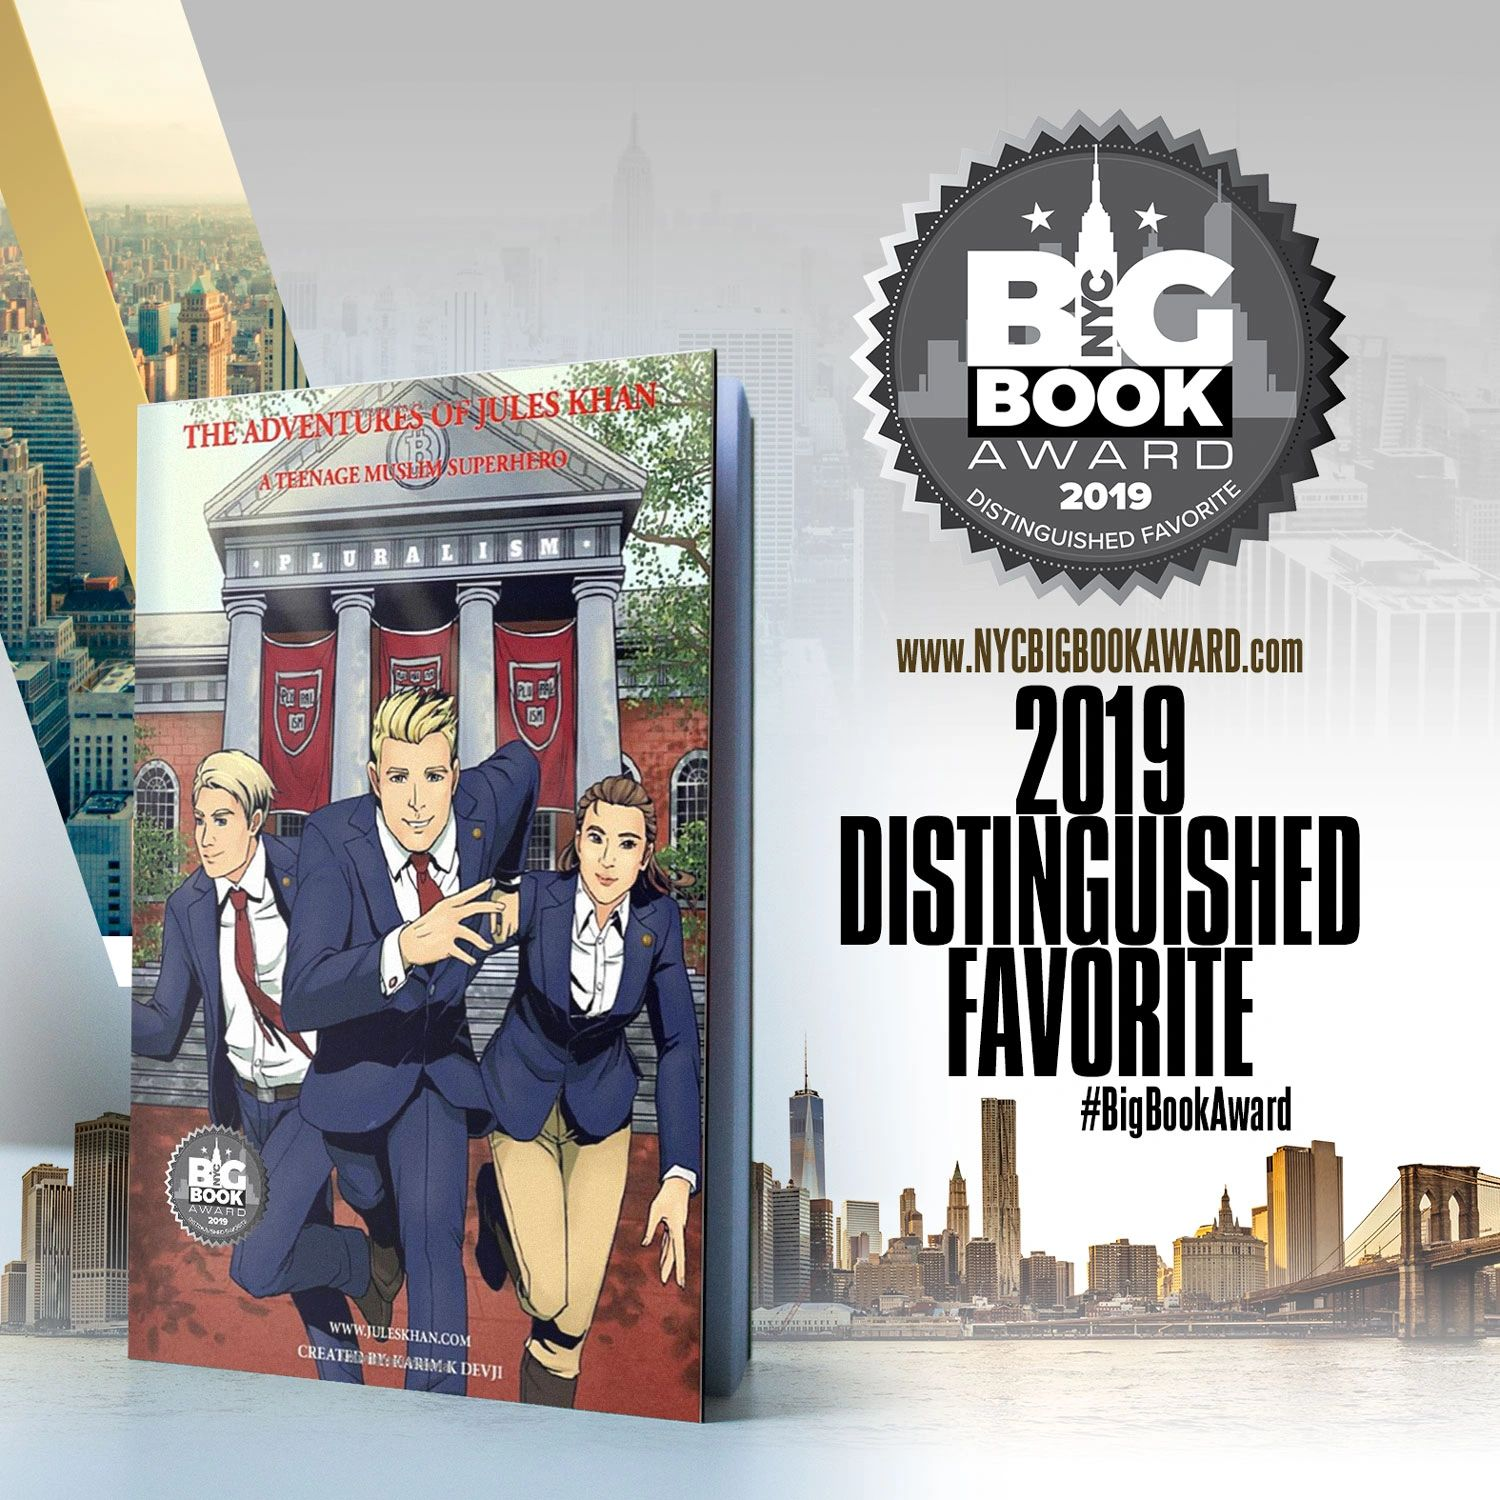 New York City Big Book Awards - Distinguished Favorite Winner 2019 - Young Adult Fiction. Buy a copy